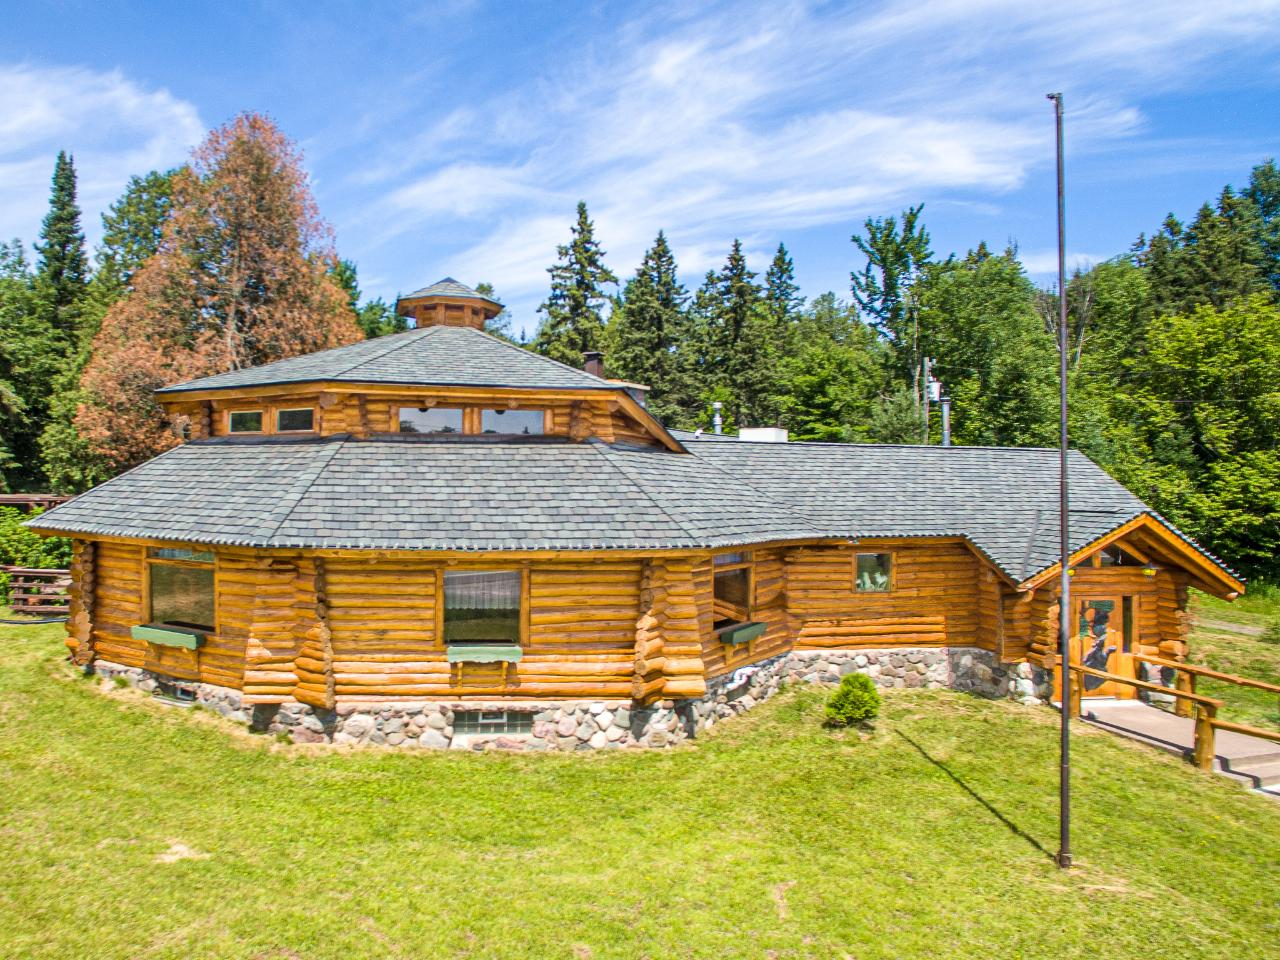 Imagine what you can do with this incredibly well finished full log masterpiece located on busy US-2. Over $700K invested in renovations and absolutely no expense was spared in terms of material quality from floor to ceiling. Could be used as an impressive business location, restaurant, rental lodging (there are 3 bedrooms downstairs along with a master bath), B&B, even a luxurious home, or whatever one can imagine. Situated on 11 acres with a huge pond, this property is located on US Highway 2 and is ready to use and enjoy now! Massive stone fireplaces, the finest quality finishes, wood carvings, a gorgeous bar, impressive loft, and incredible recreation area--no detail was overlooked! Just a couple miles from the best skiing in the Midwest, across the road from the snowmobile/ATV trail, and conveniently located right next to the medical center. One is sure to be impressed upon entering this property which is offered for a mere fraction of its replacement value...call today!